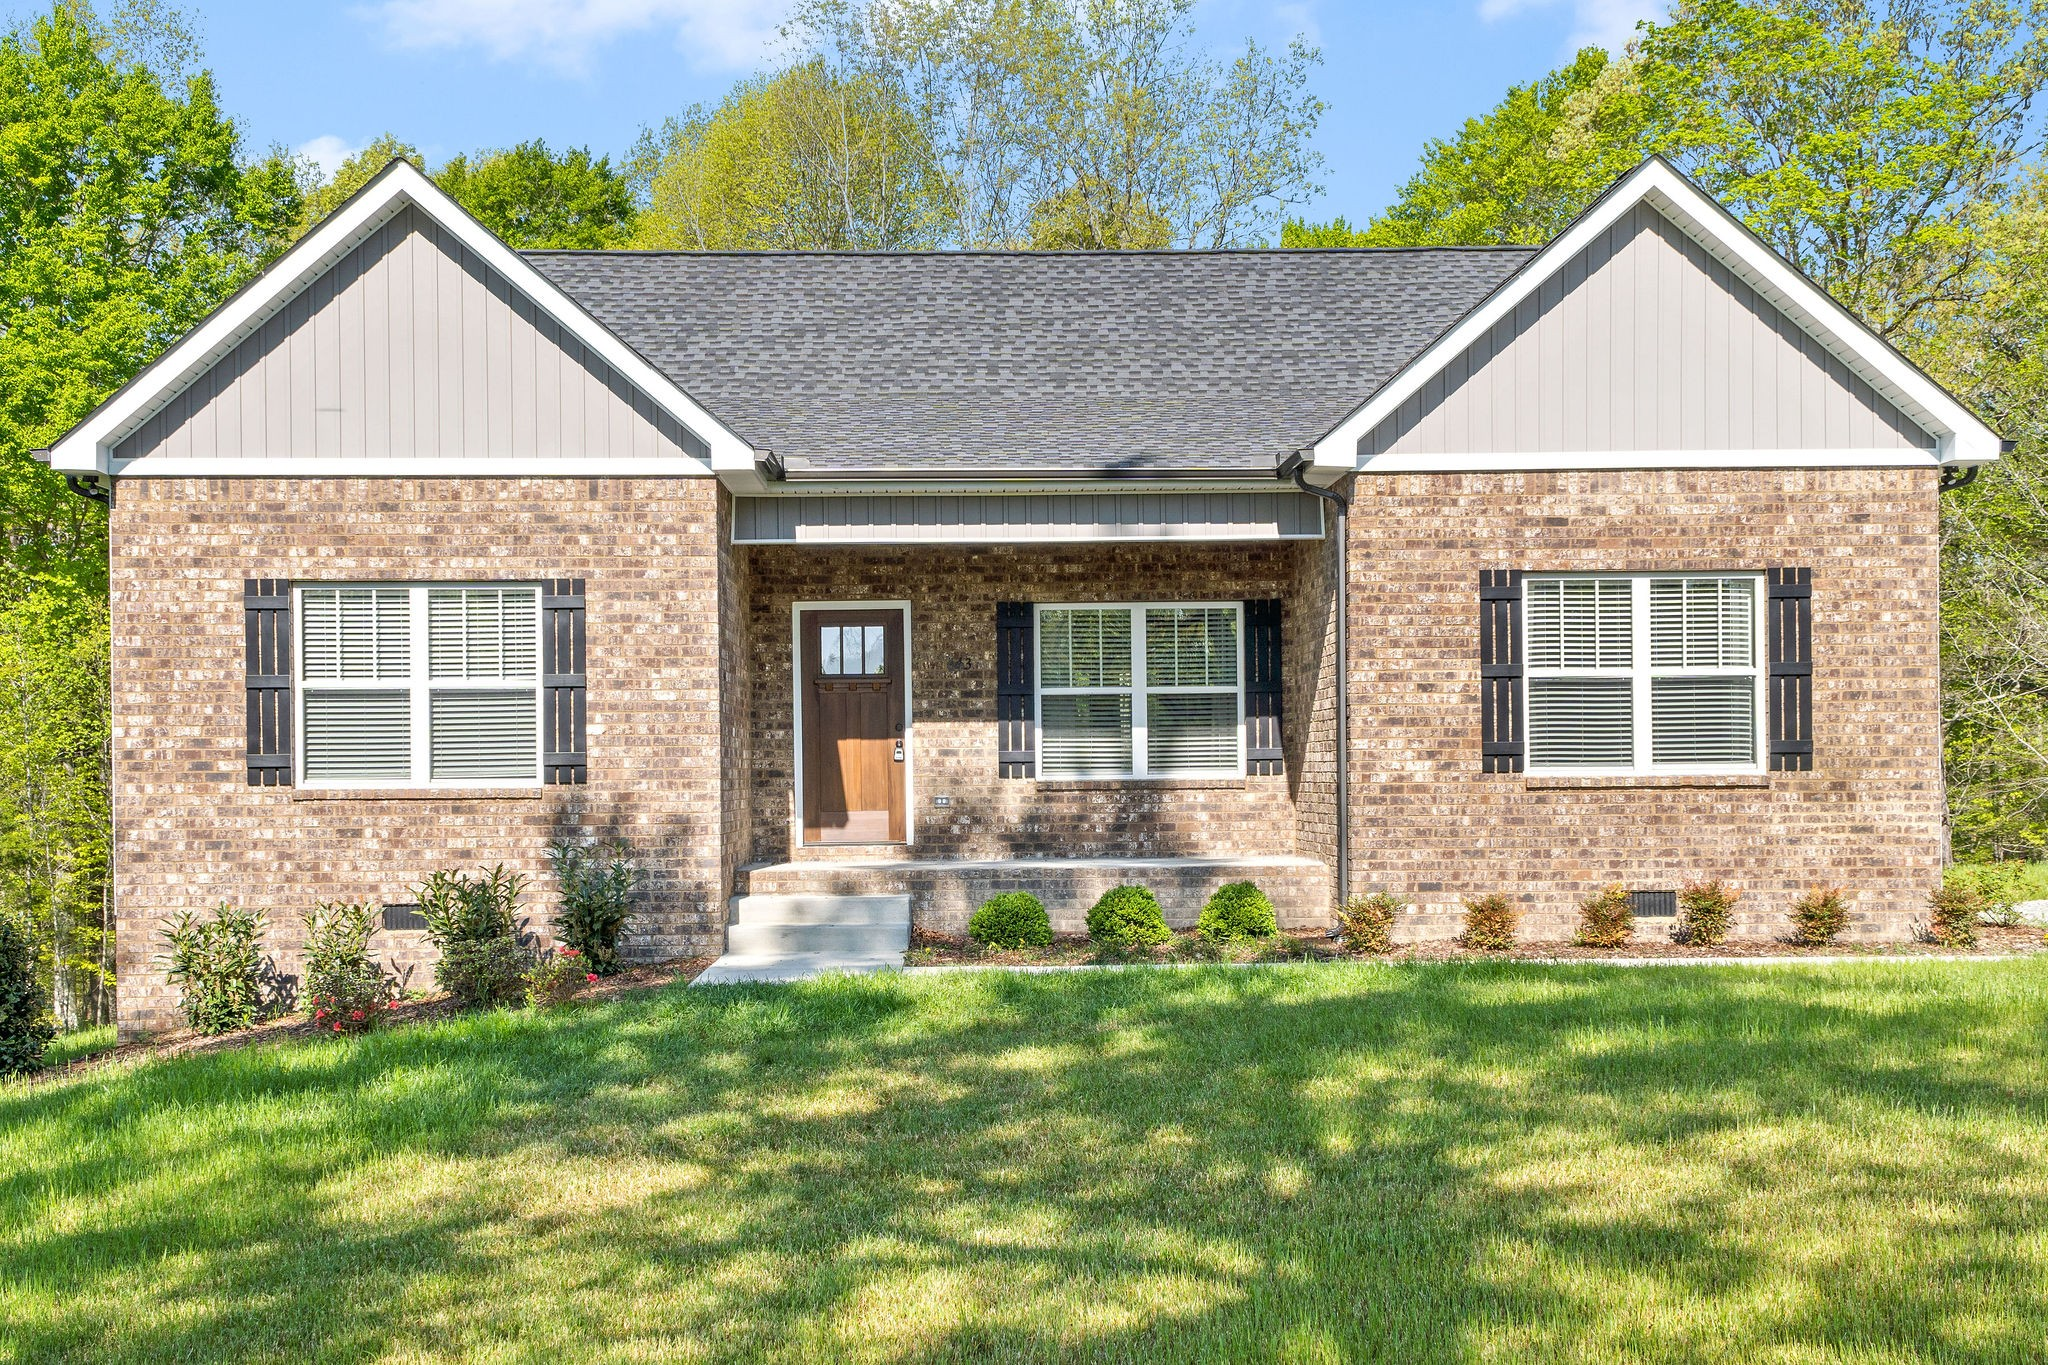 643 Sycamore Rd Property Photo - Dickson, TN real estate listing